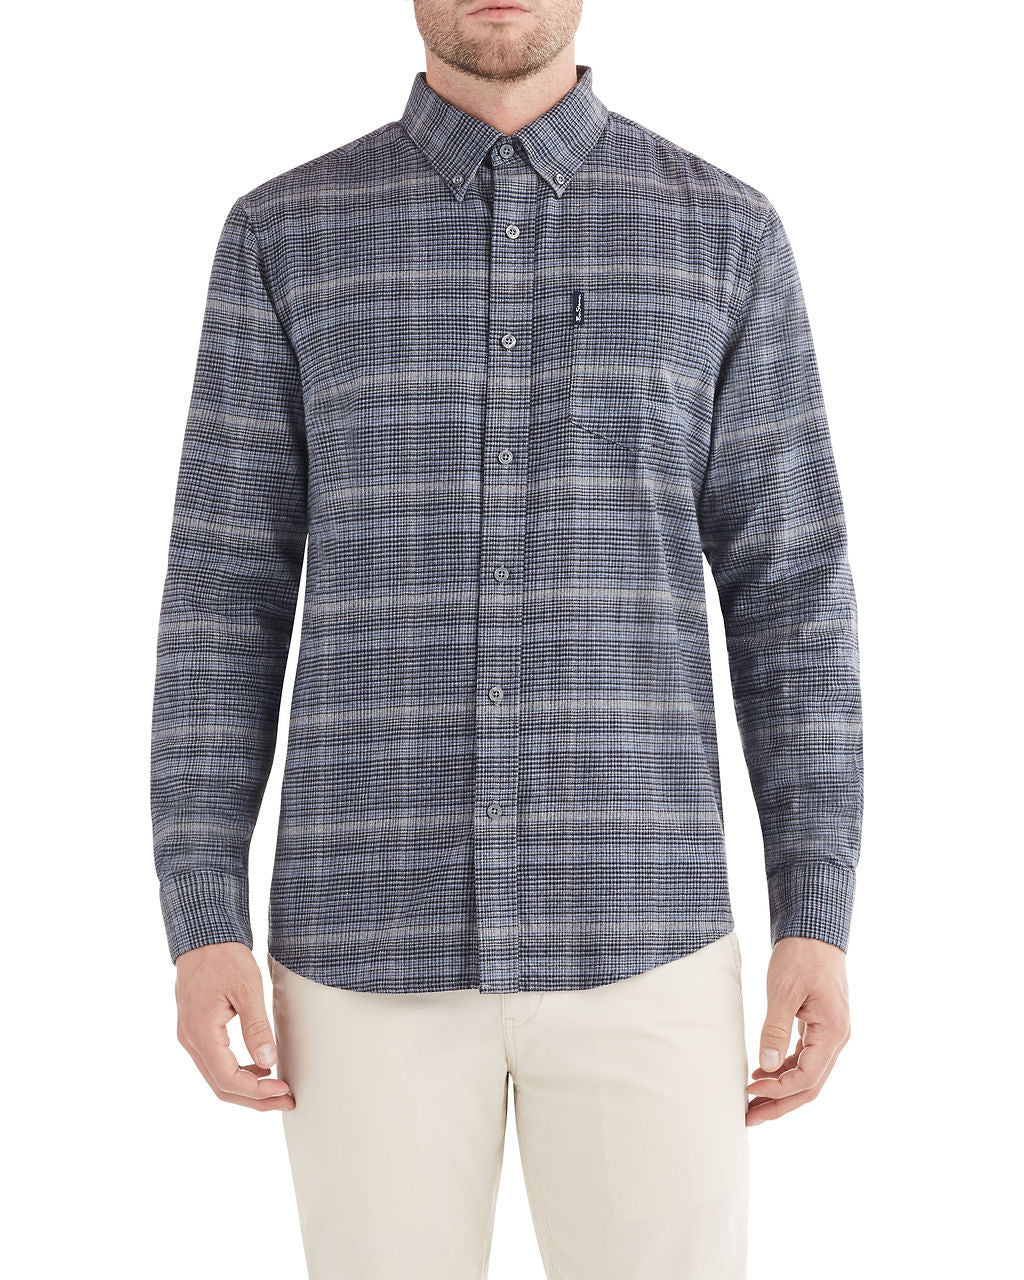 Long-Sleeve Herringbone Mini Check Shirt - Blue Grey